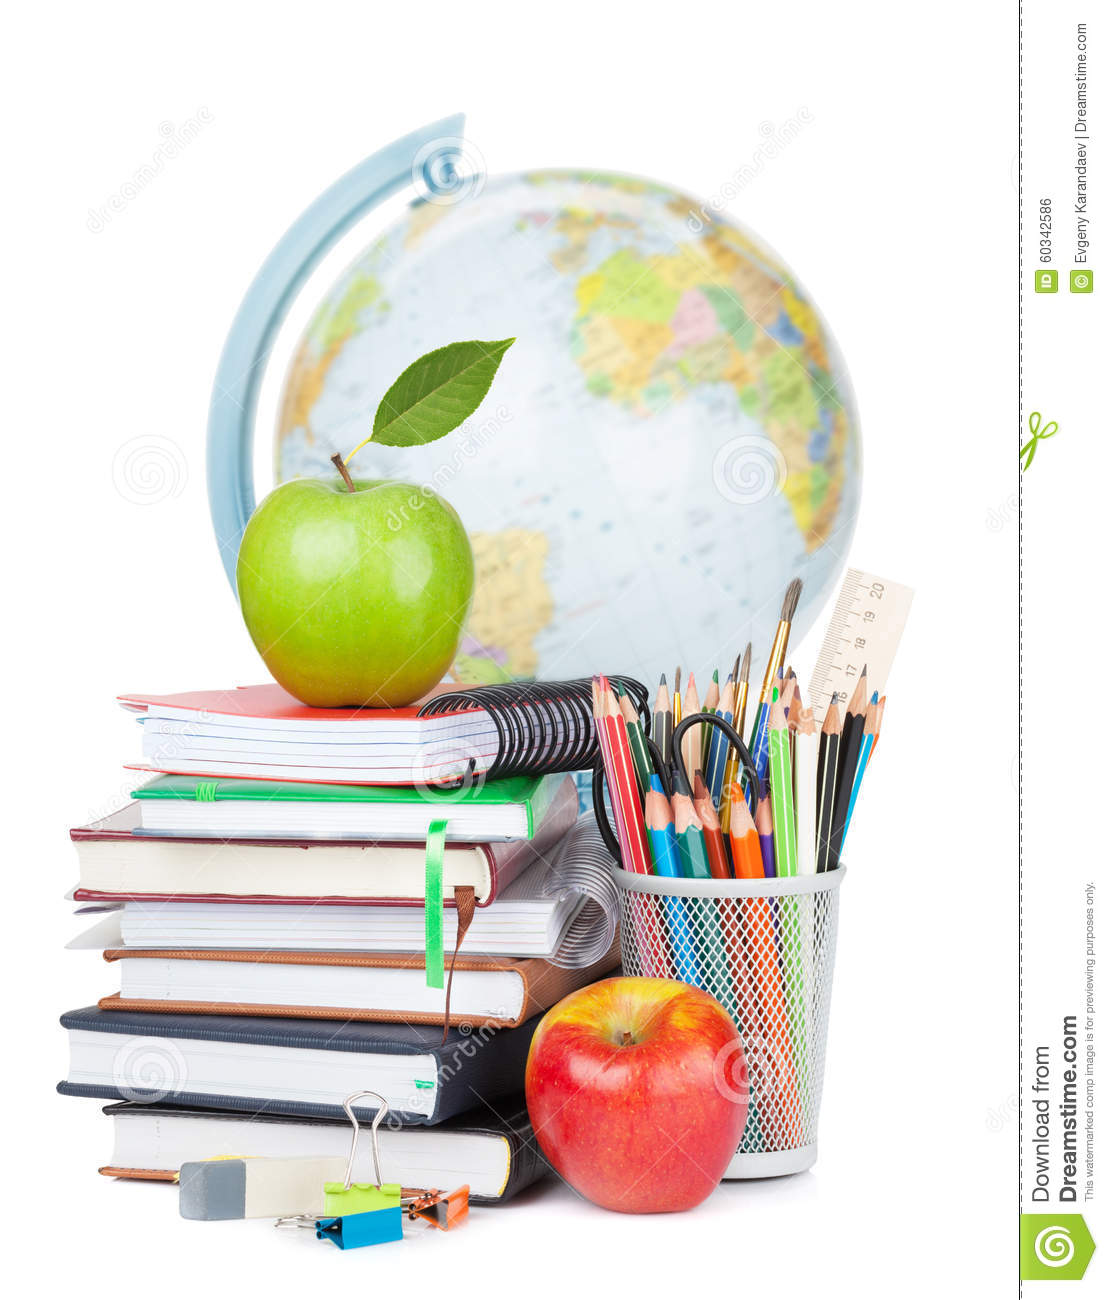 School And Office Supplies Stock Photo Image 60342586